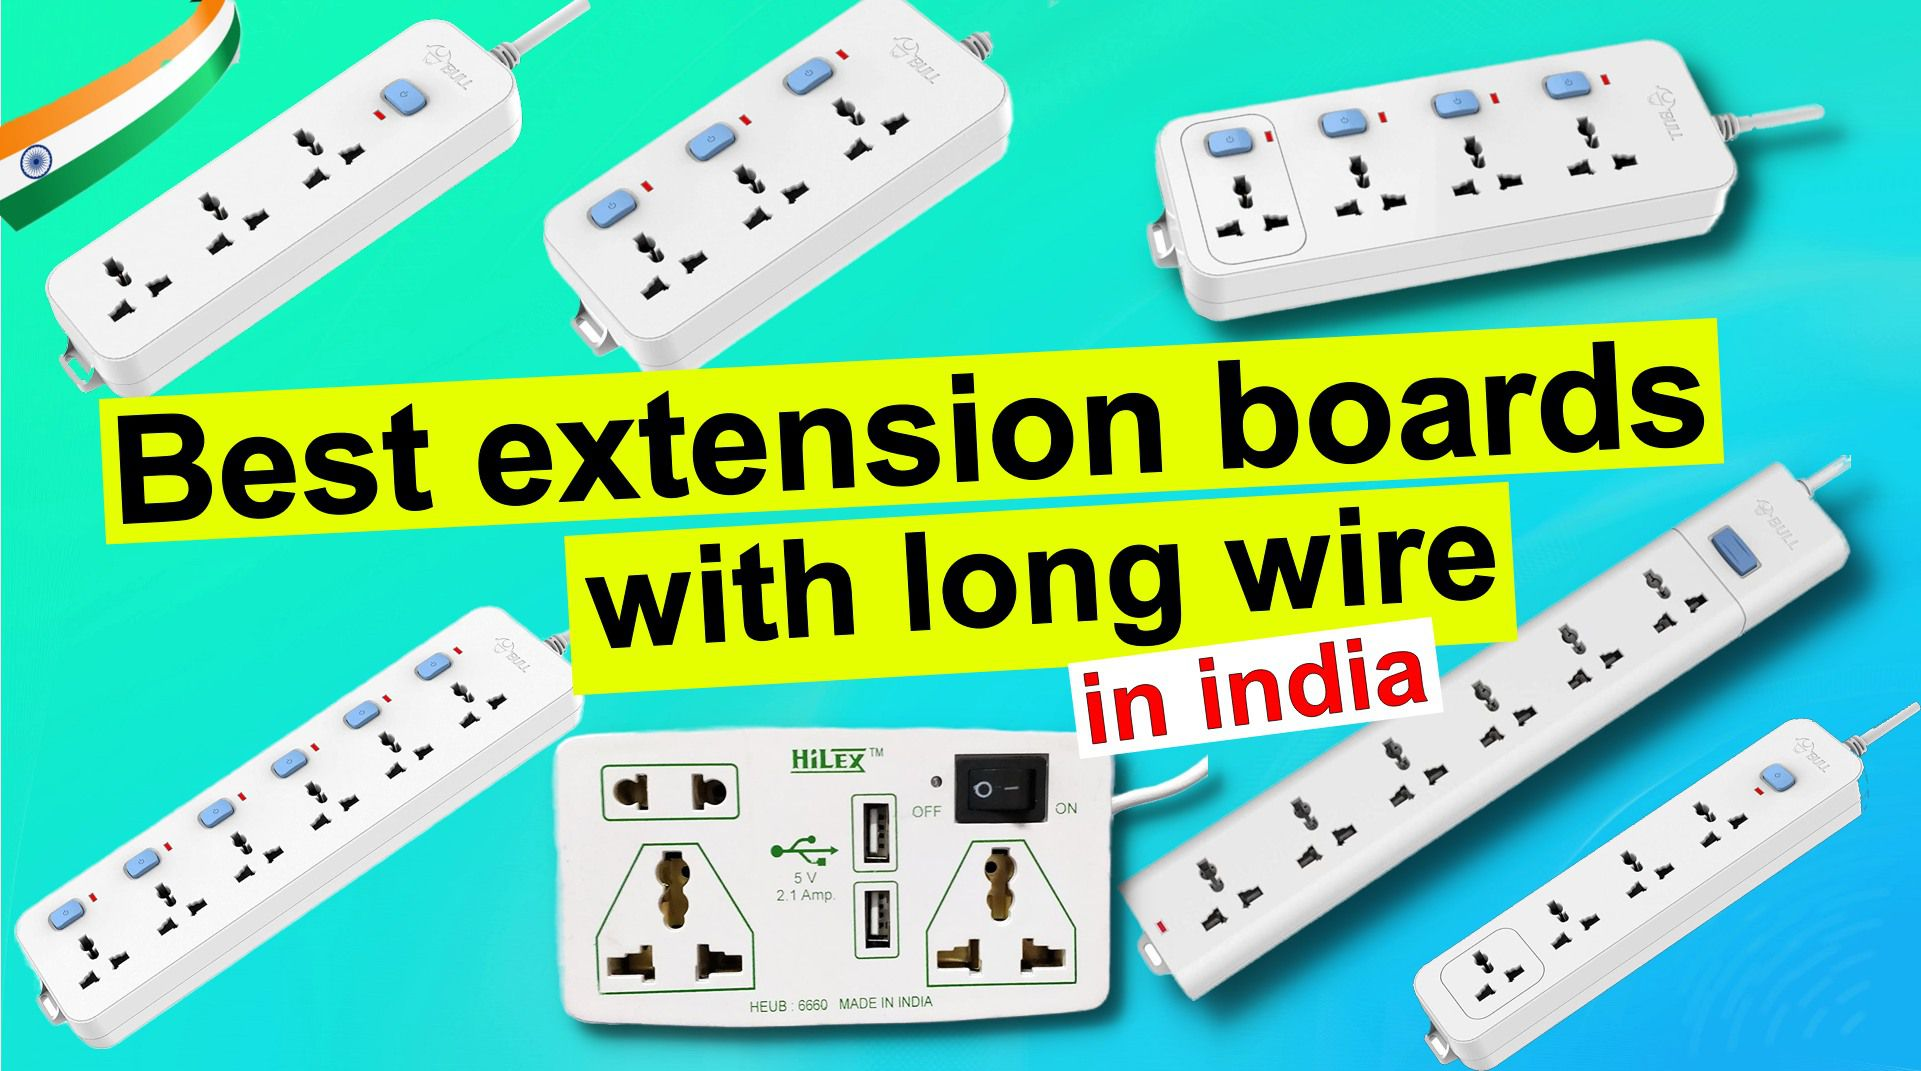 Best extension boards with long wire